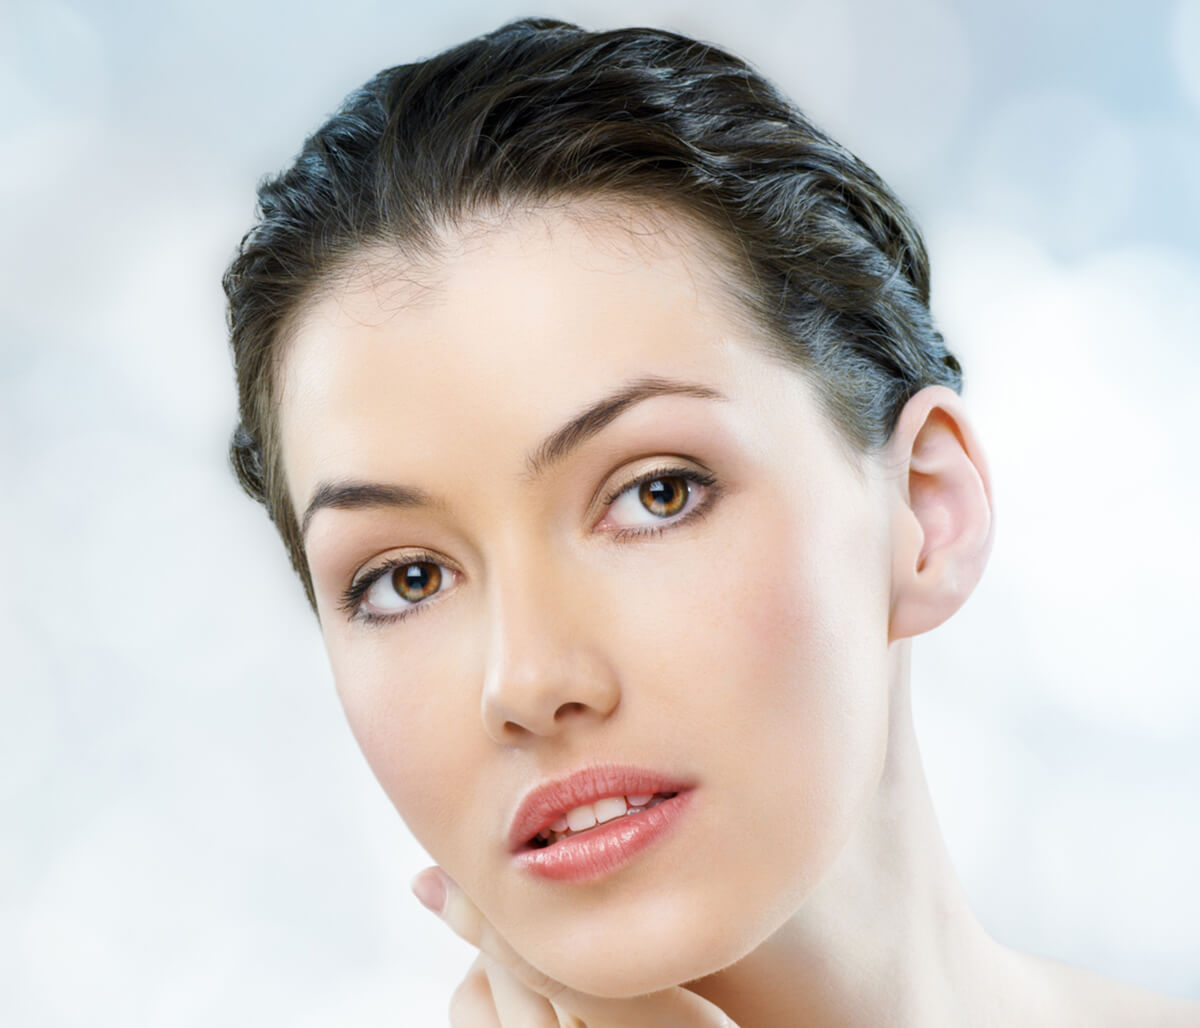 Are You Located in West Palm Beach Area and Considering Skin Care Clinical Trials?